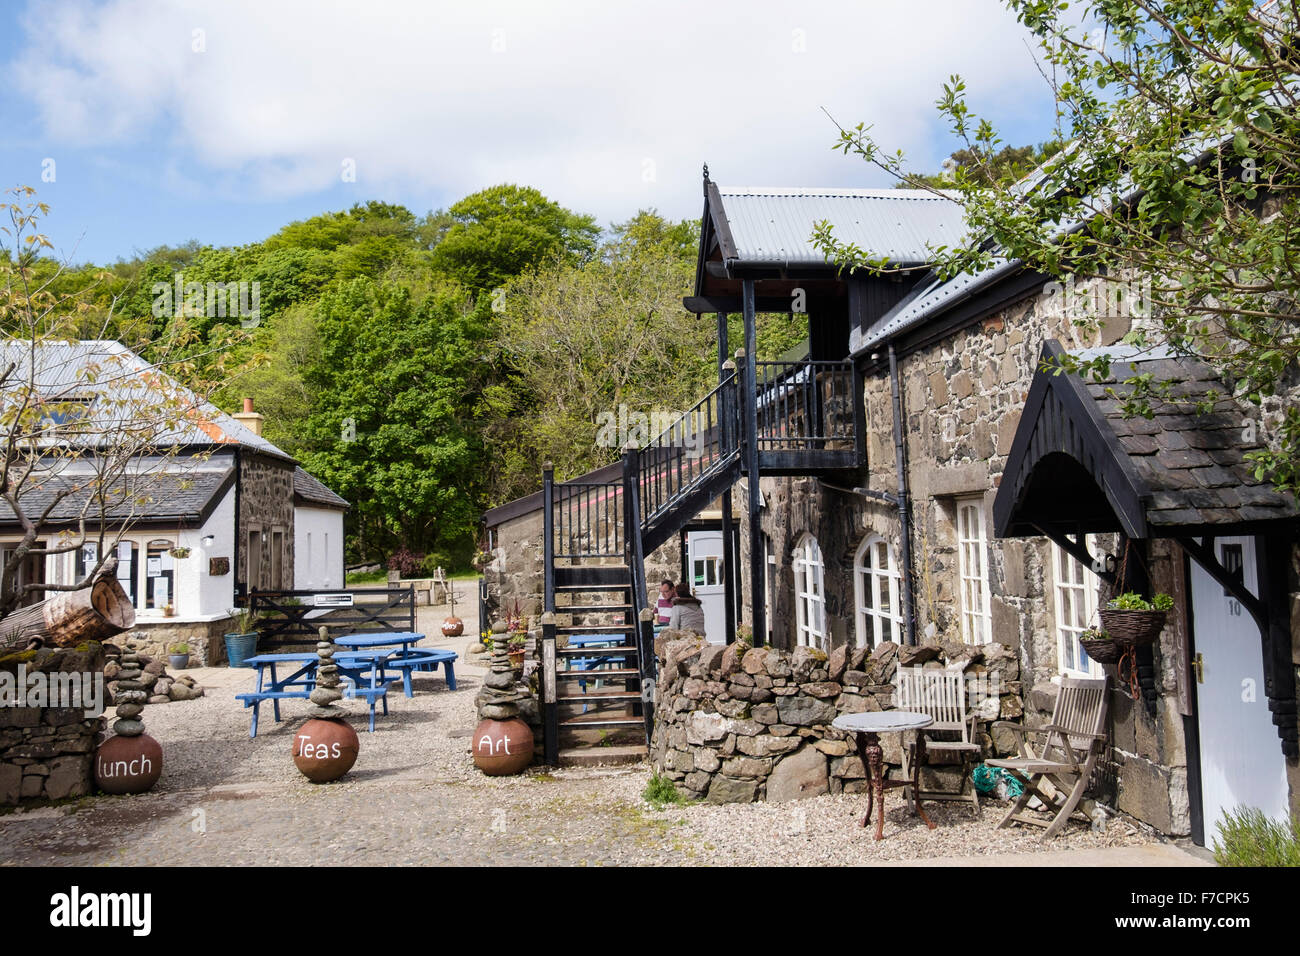 The Cafe@Calgary Arts courtyard. Calgary by Dervaig, Isle of Mull, Argyll & Bute, Inner Hebrides, Western Isles, - Stock Image